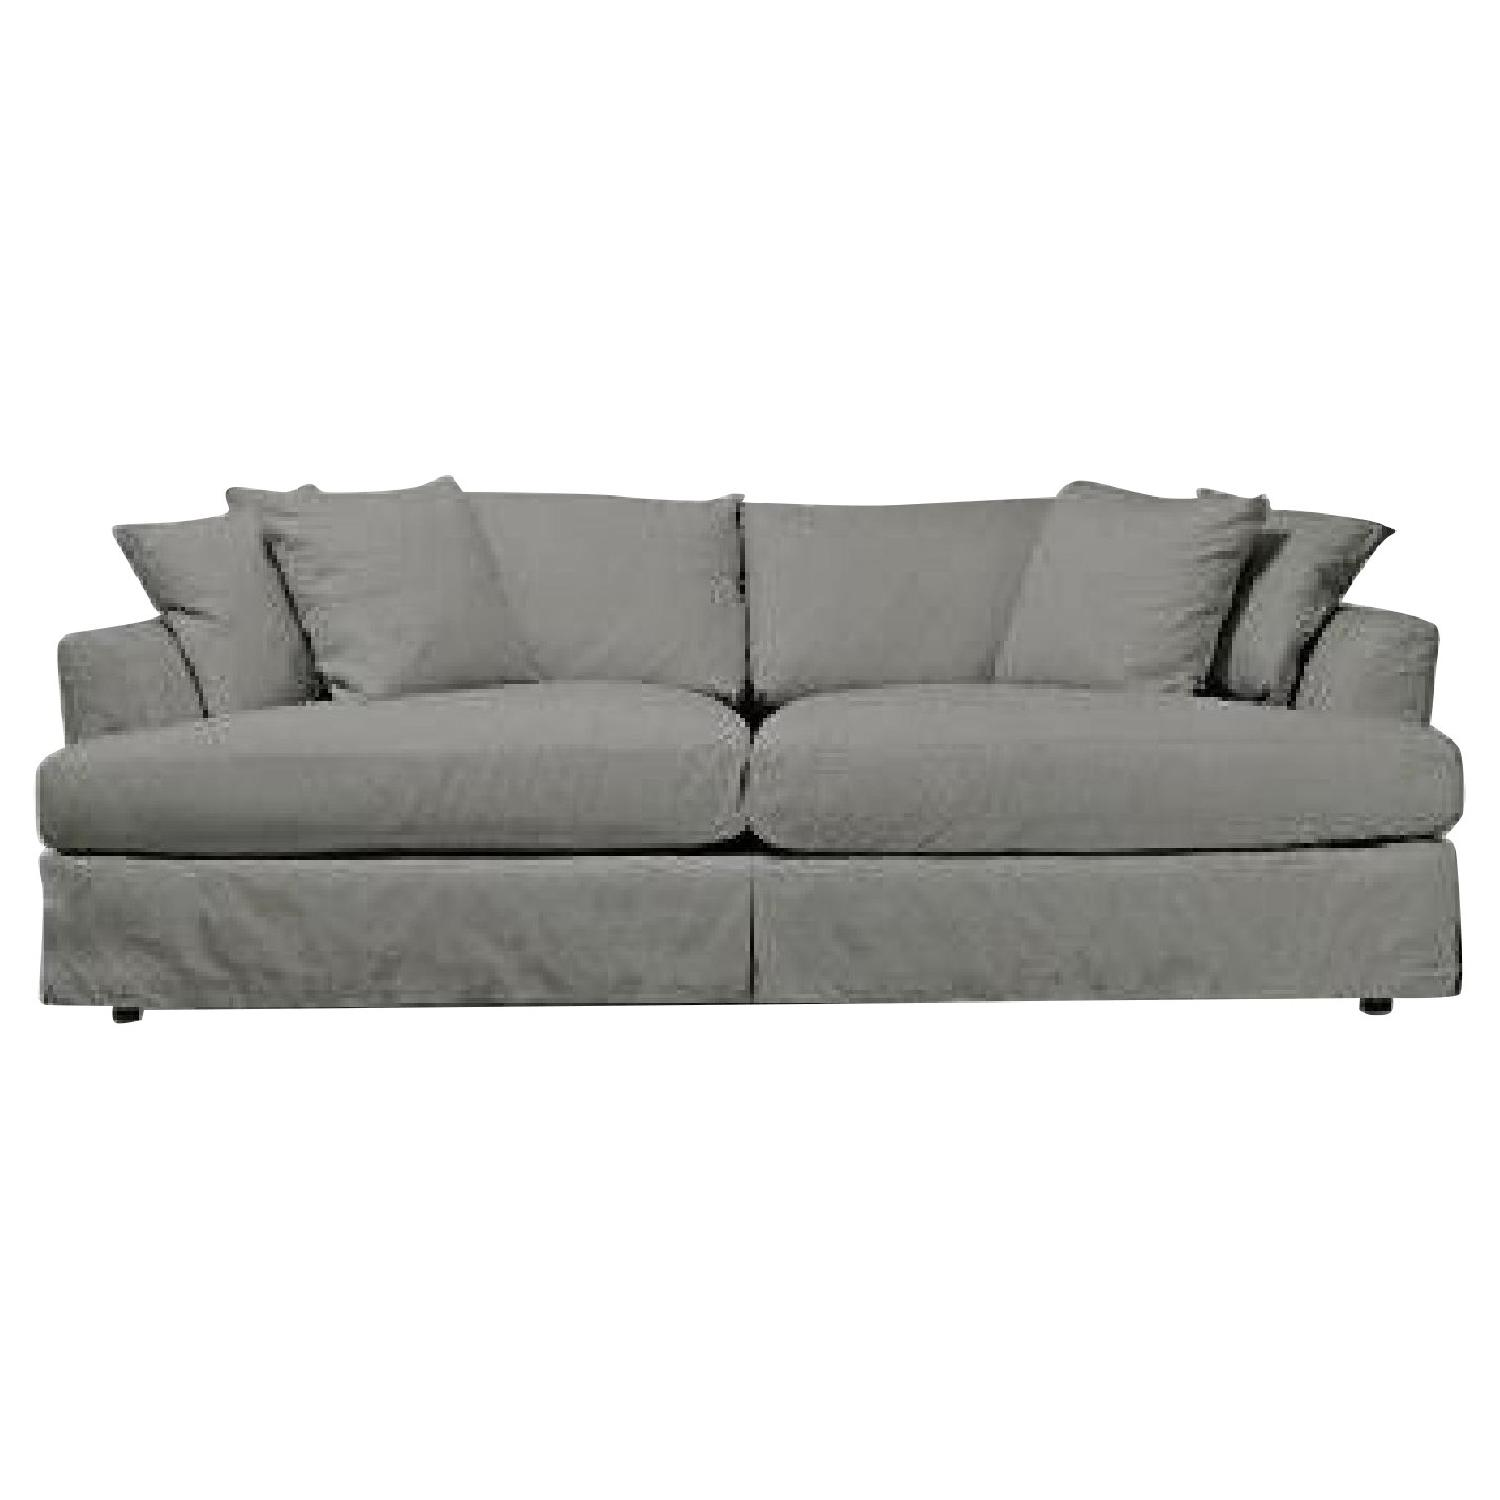 ABC Carpet & Home Cobble Hill Sofa in Gray Linen